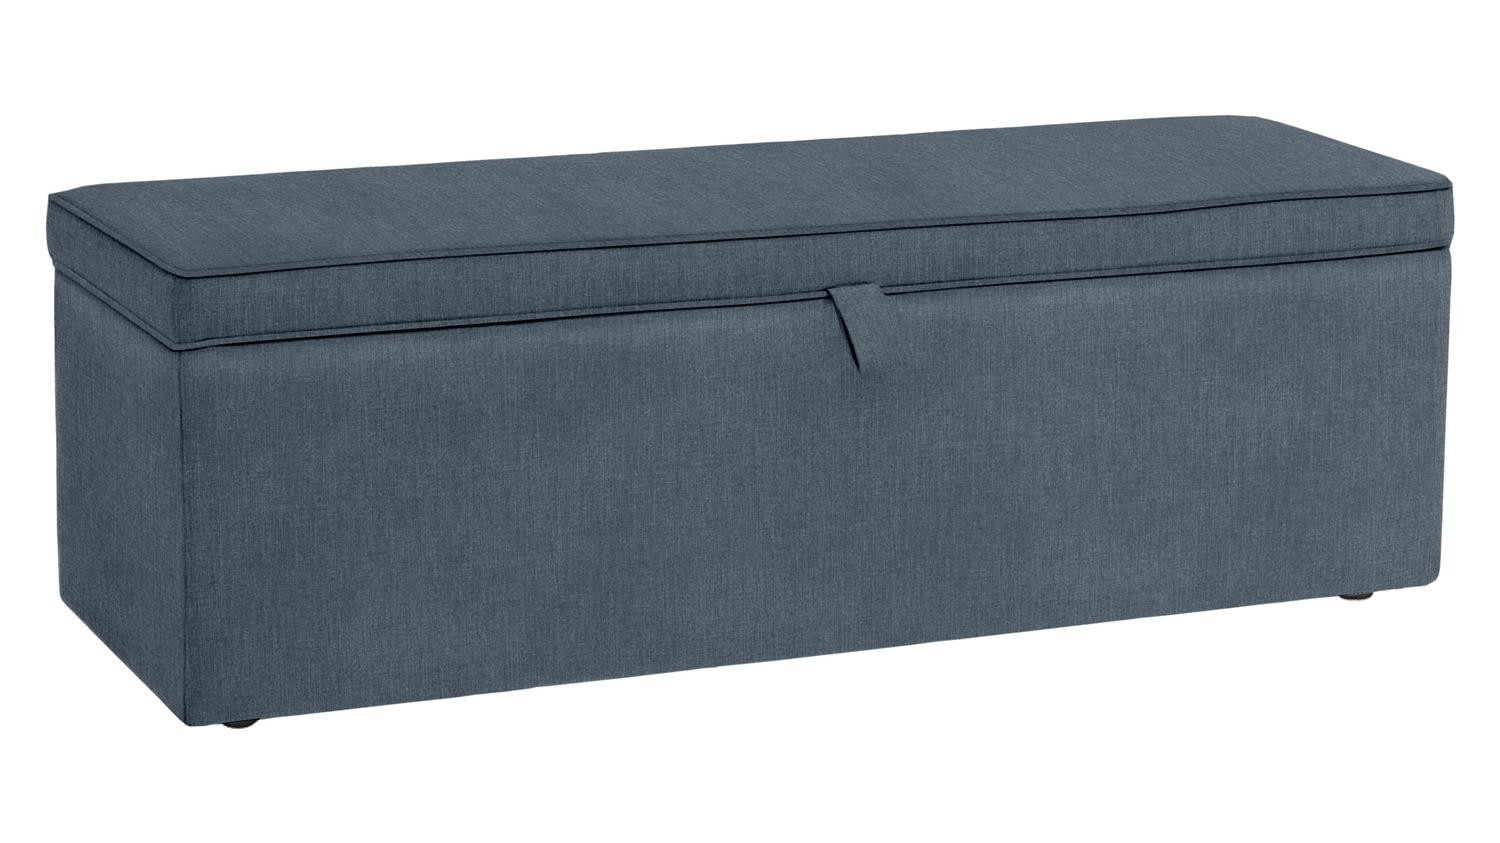 The Sherston Large Blanket Box